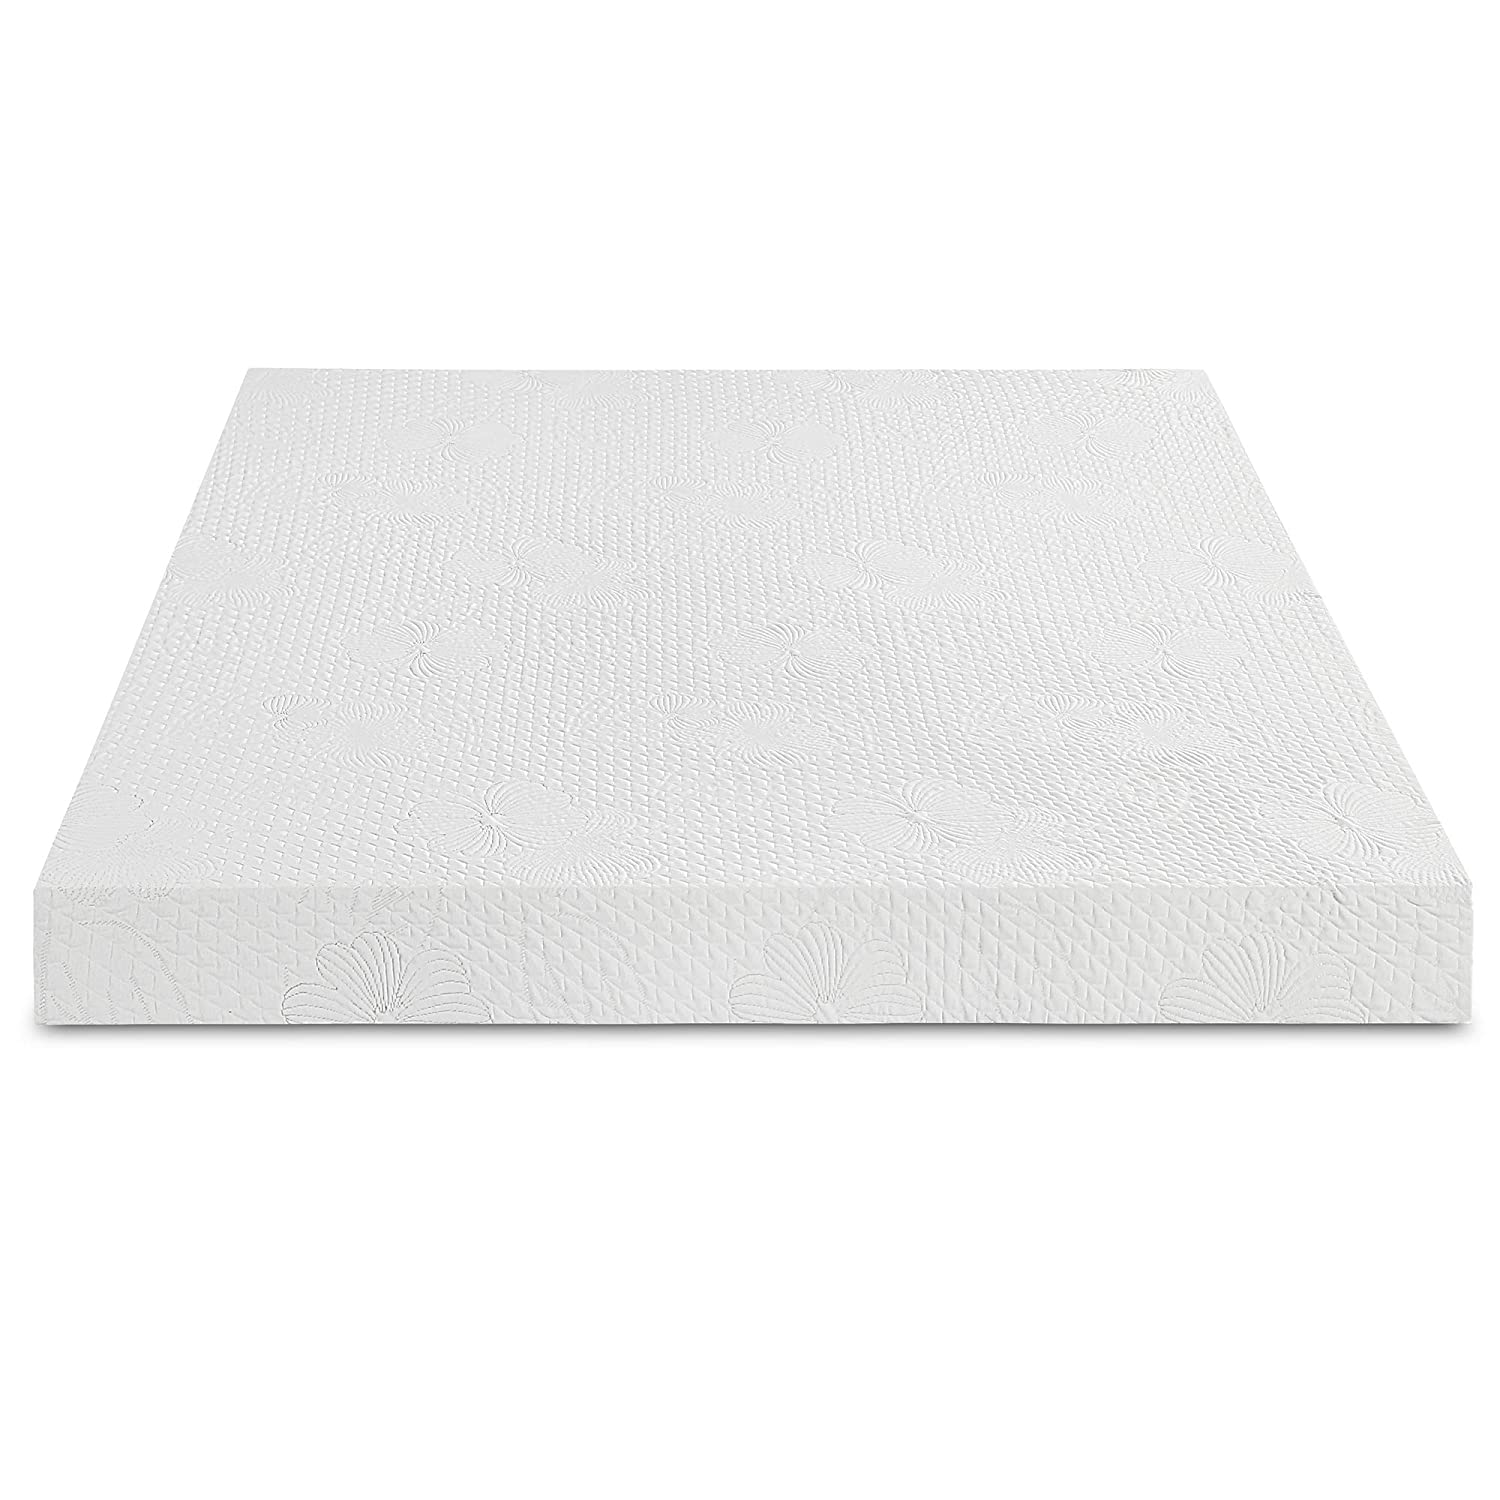 Olee Sleep 5 Inch Gel Adaptive Comfort Memory Foam Mattress 05FM04 (Twin)